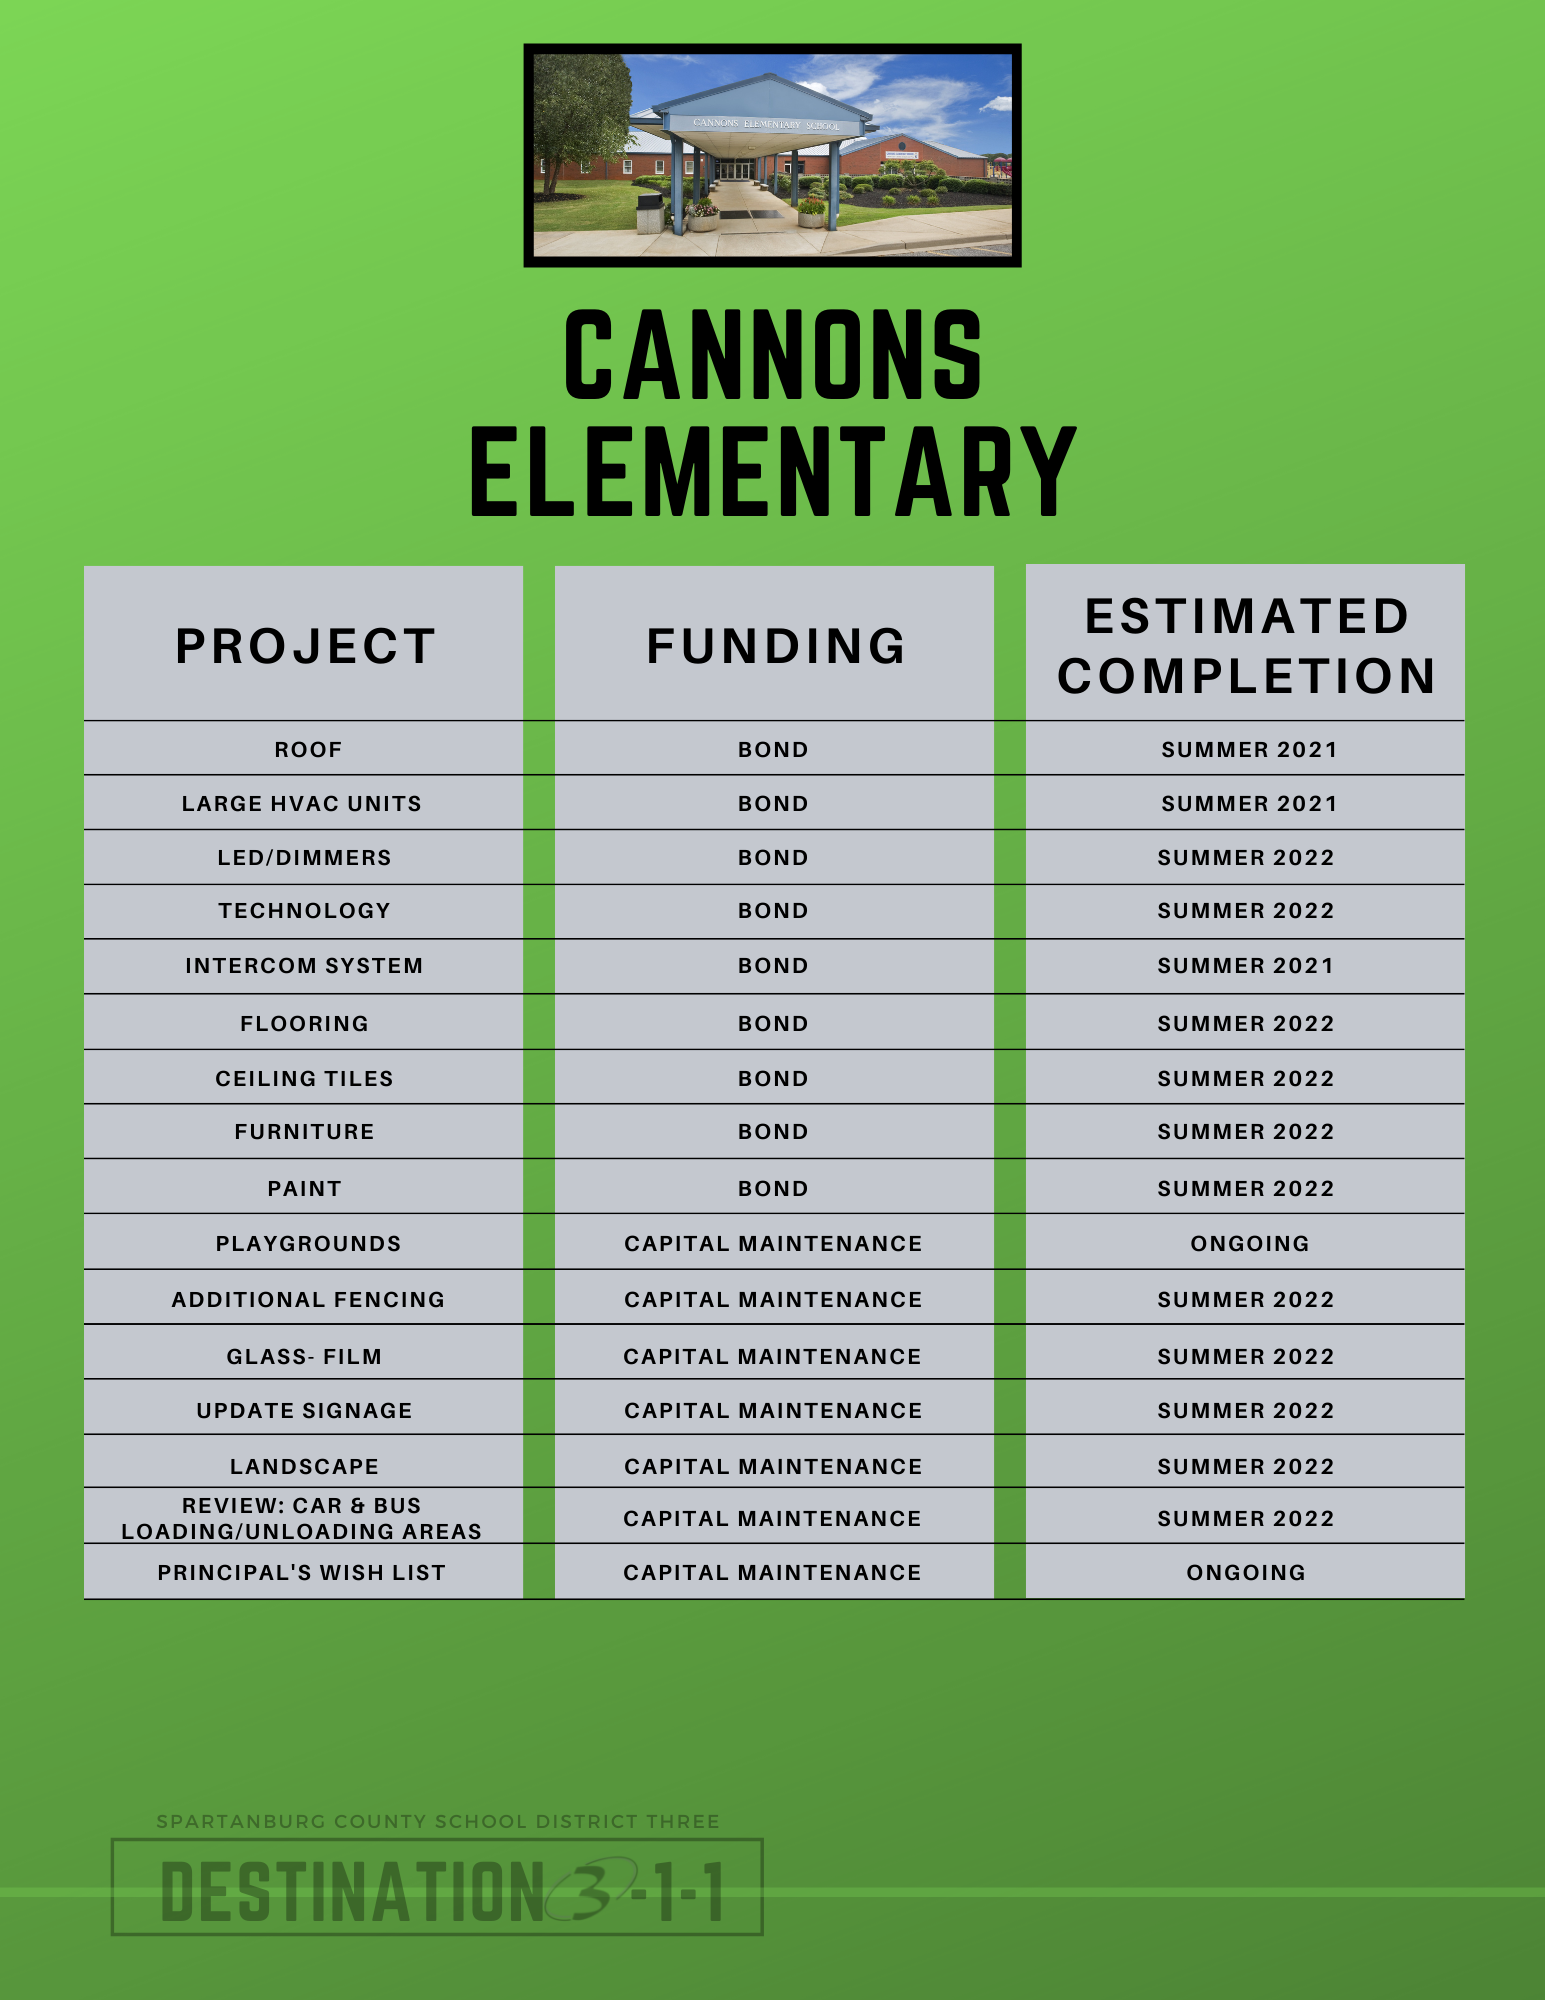 cannons elementary projects